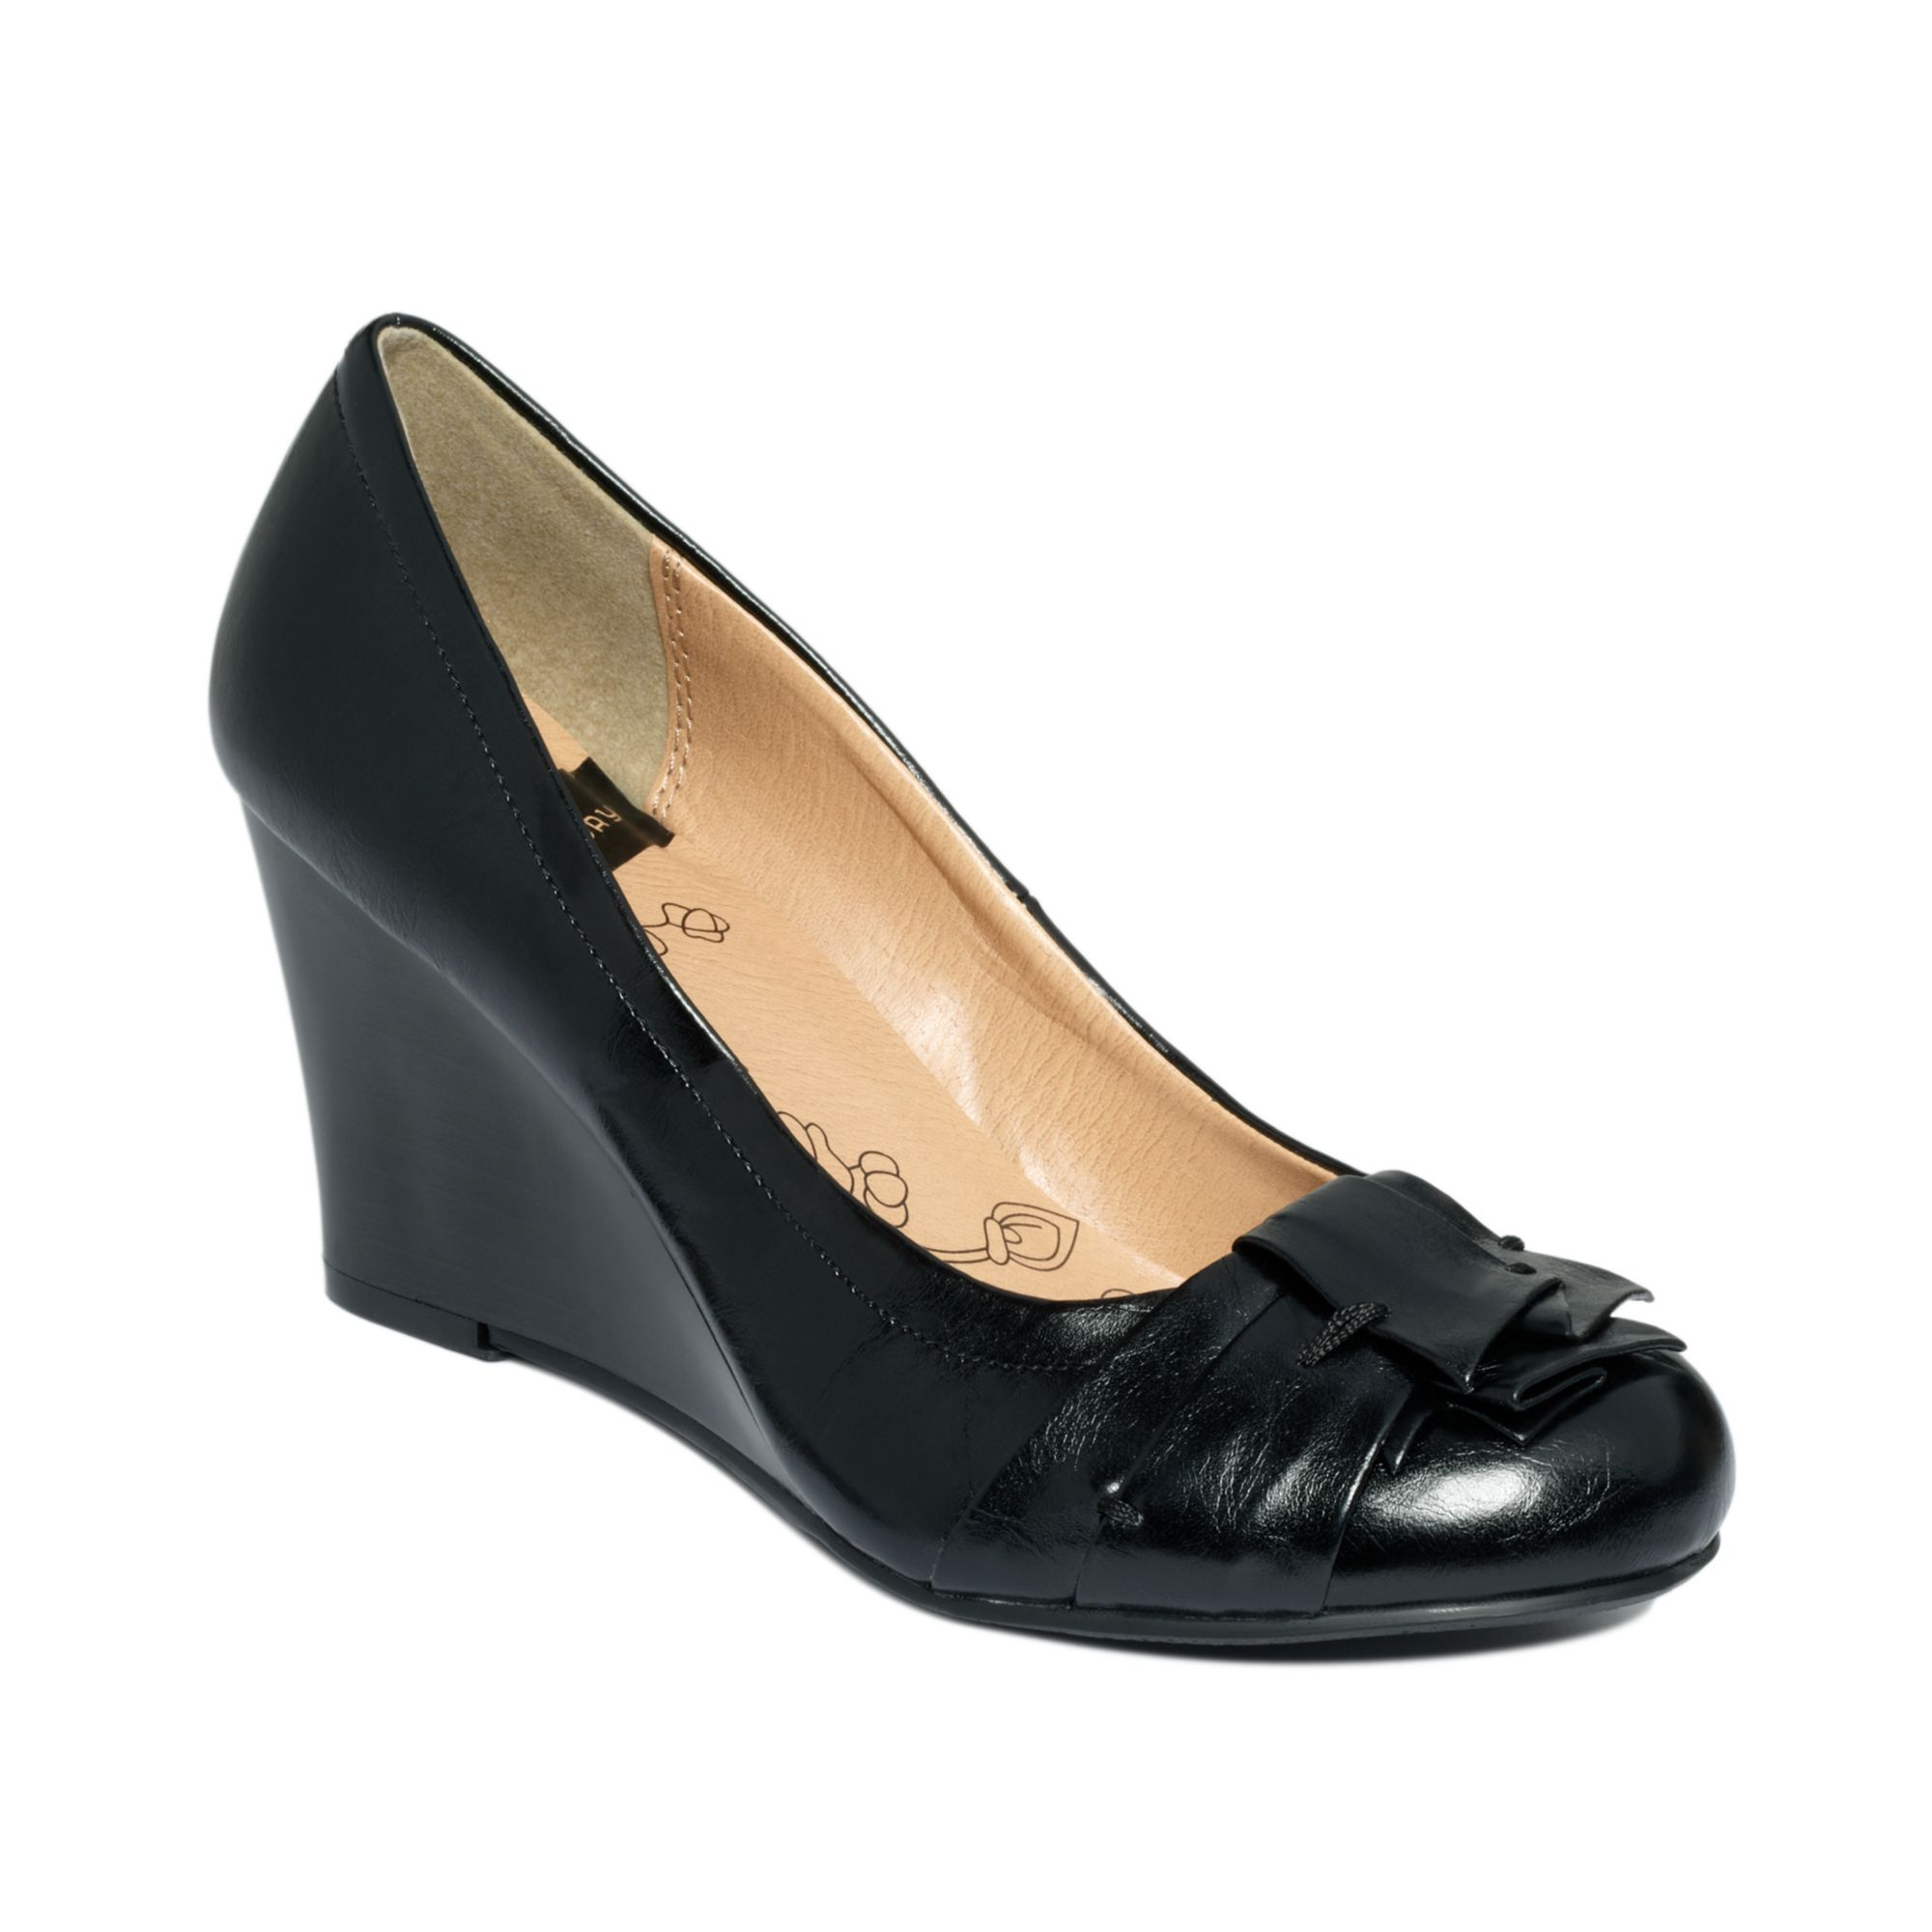 73547ffe05 Lyst - Chinese Laundry Cl By Laundry Shoes Irmine Wedge Pumps in Black